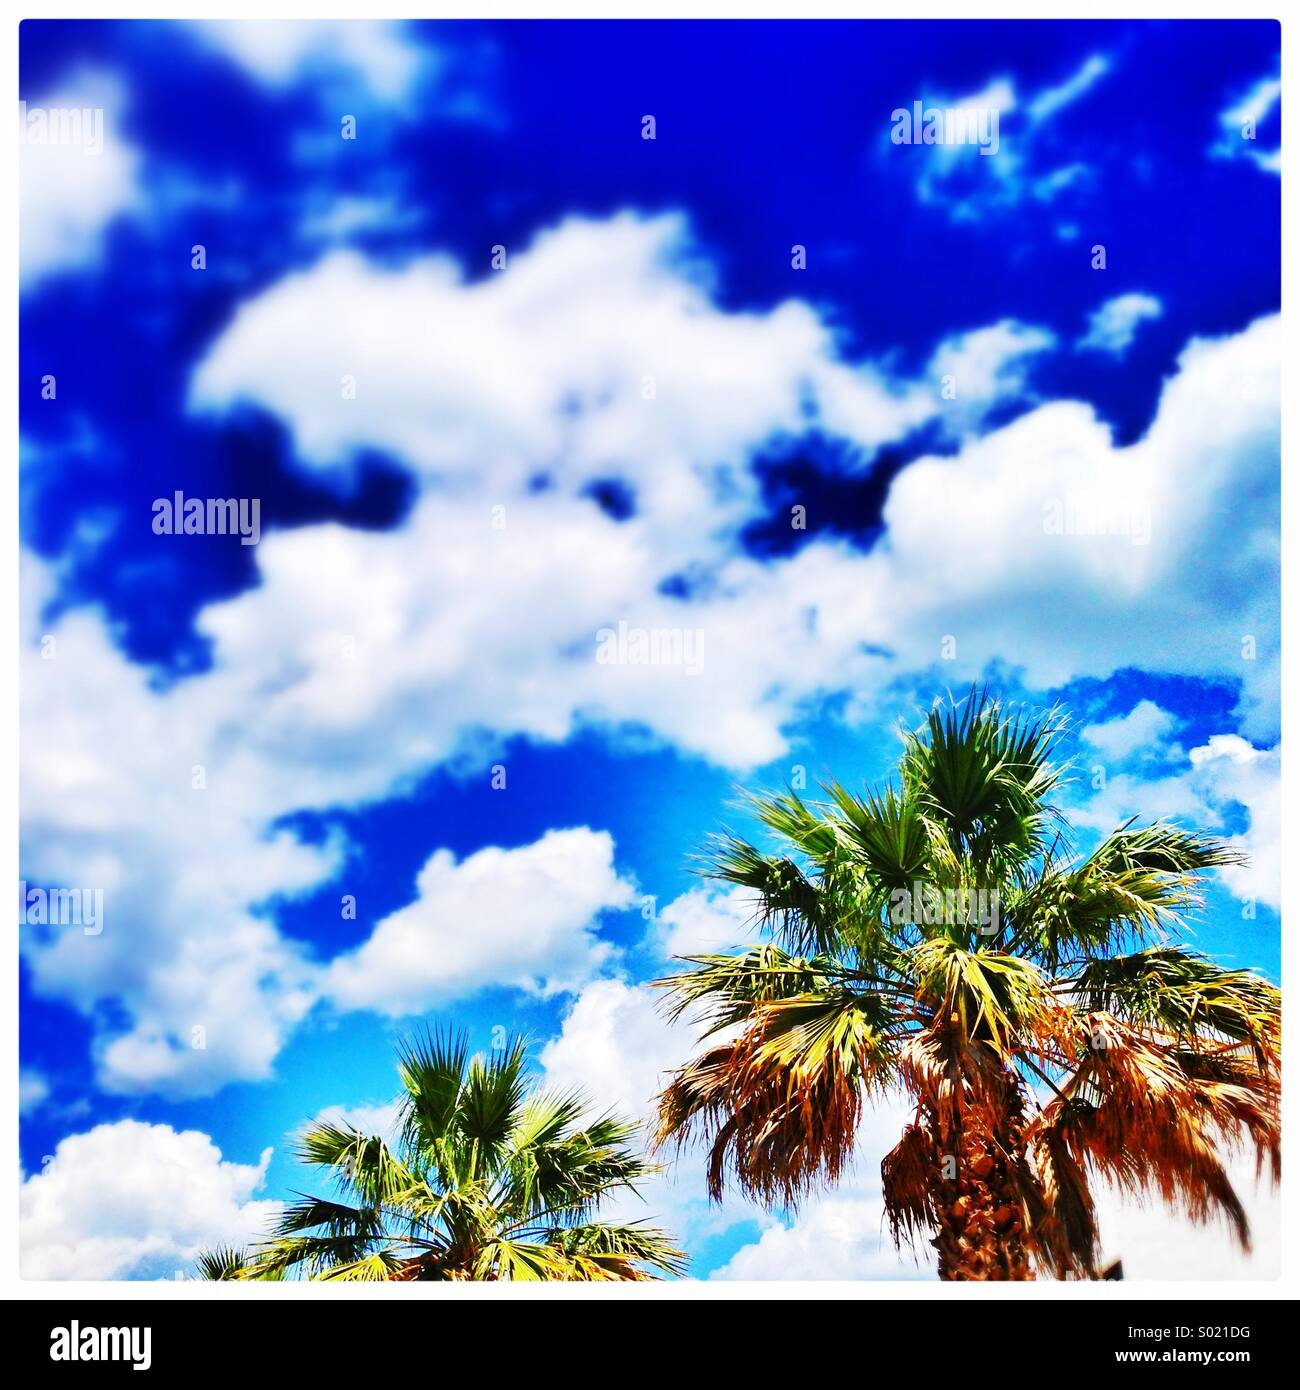 Vivid palm trees against fluffy white clouds - Stock Image